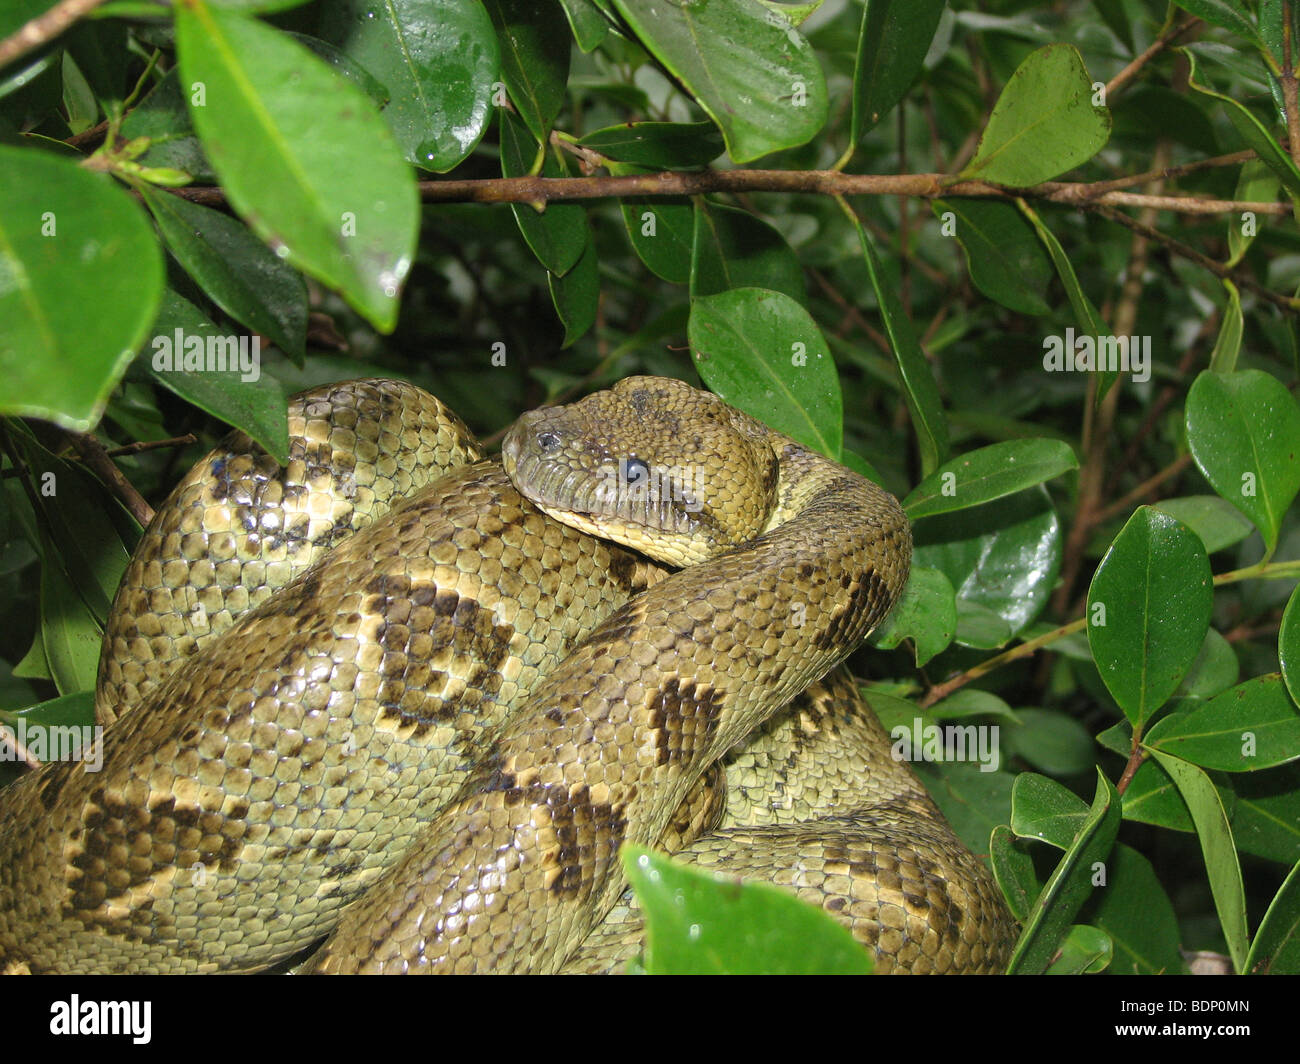 Africa, Madagascar, snake coils around itself in the bushes - Stock Image